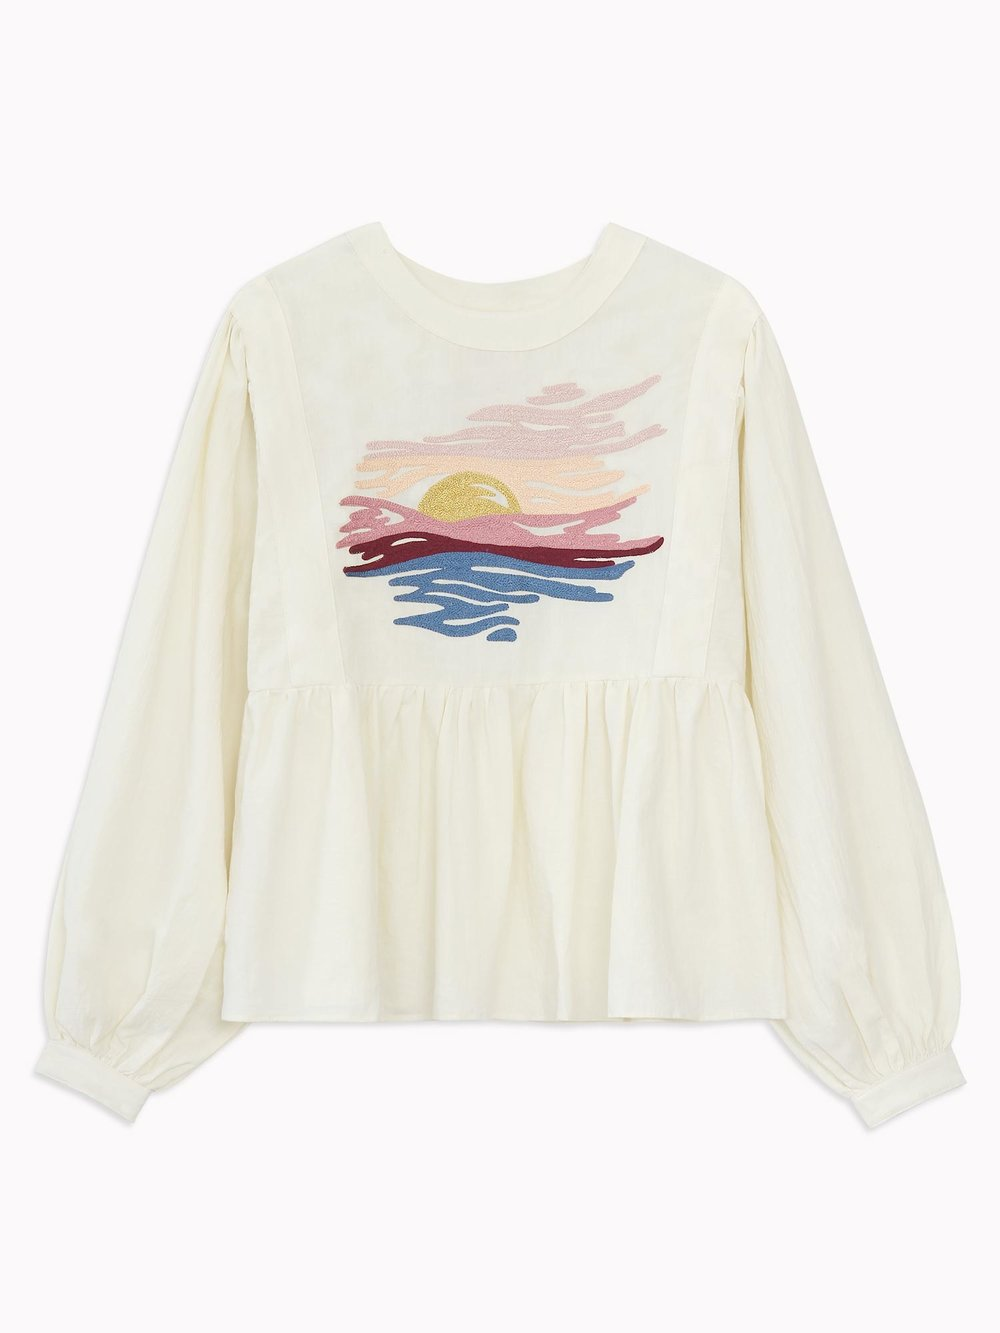 sunset Peasant Blouse in Ivory.jpg